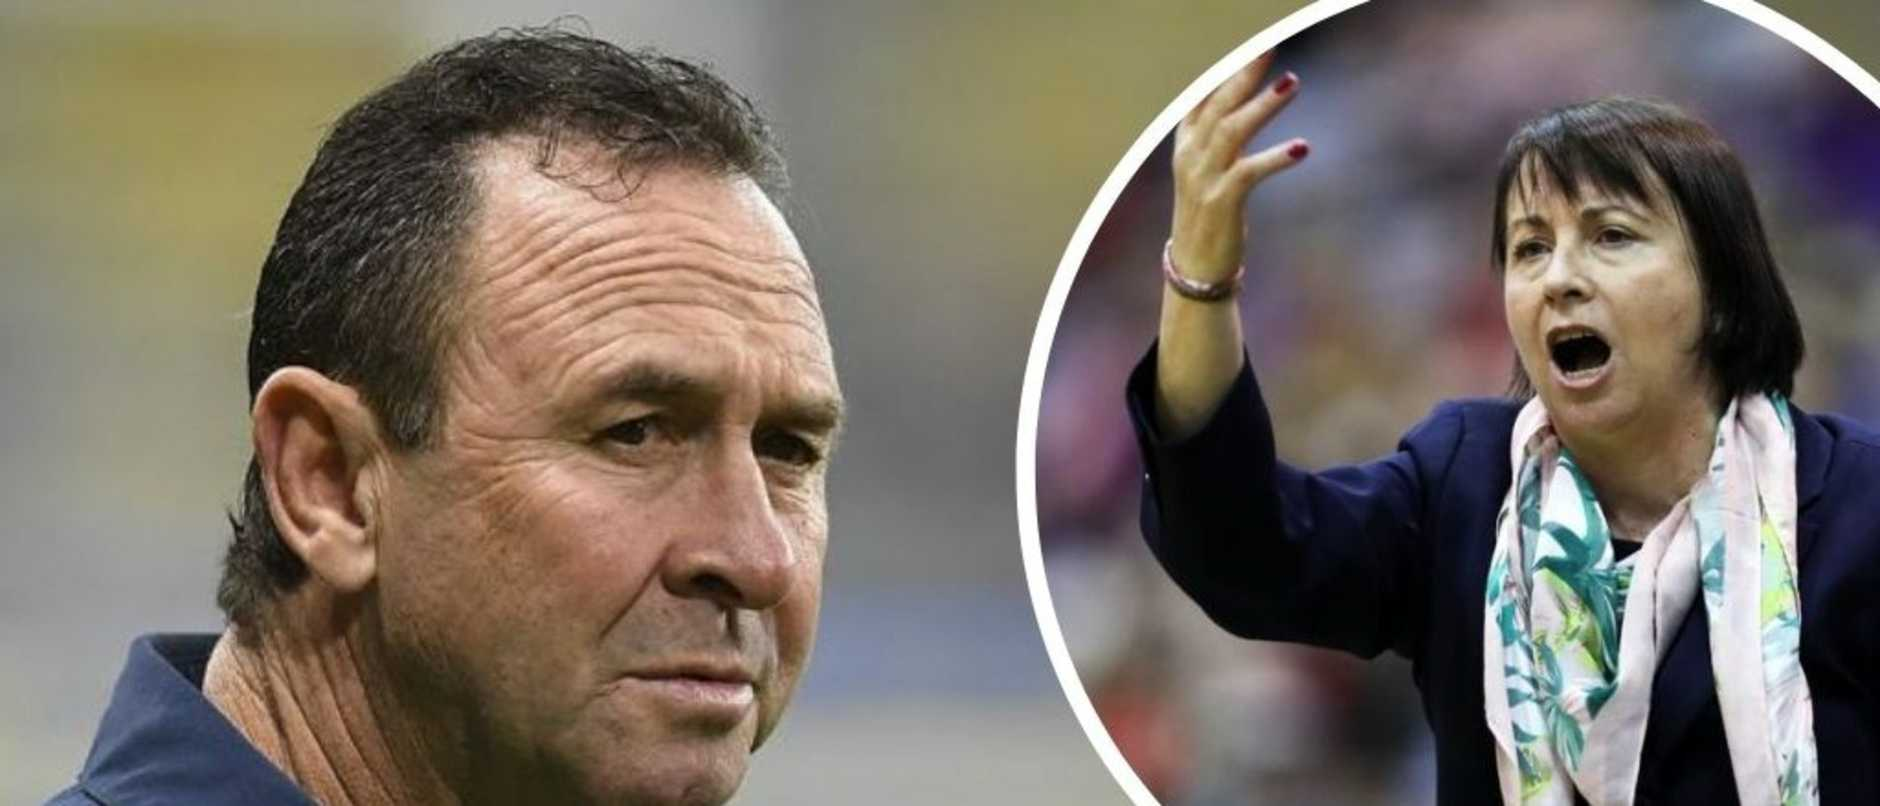 Was Raiders coach Ricky Stuart's jab at netball a sexist comment? Probably, yes. But it goes so much deeper than that, writes Lisa Alexander.